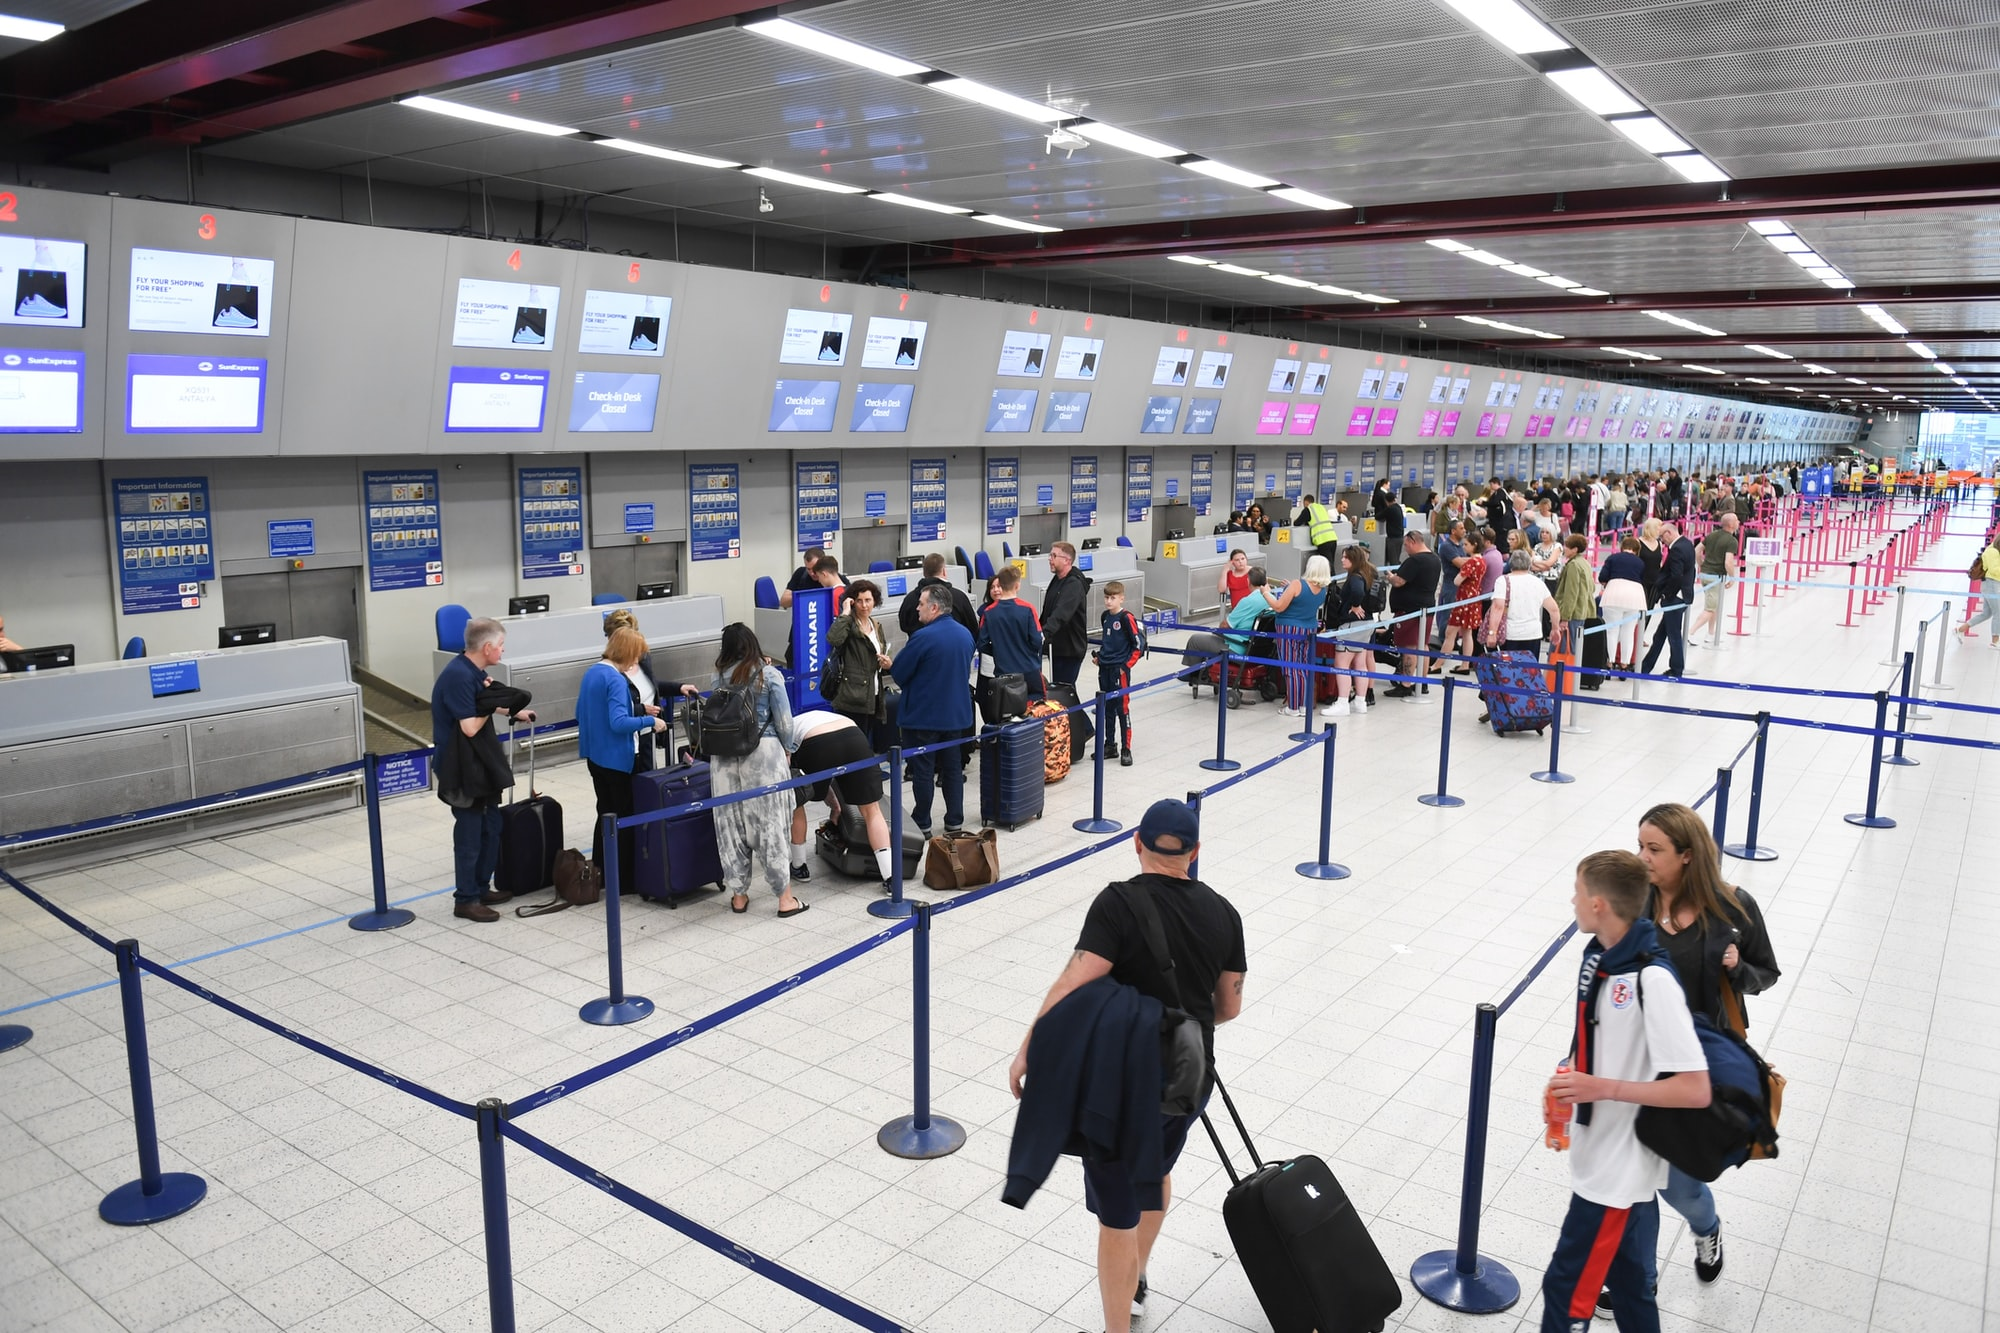 IPS: The Reason Why You Won't Get Lost in an Airport Ever Again